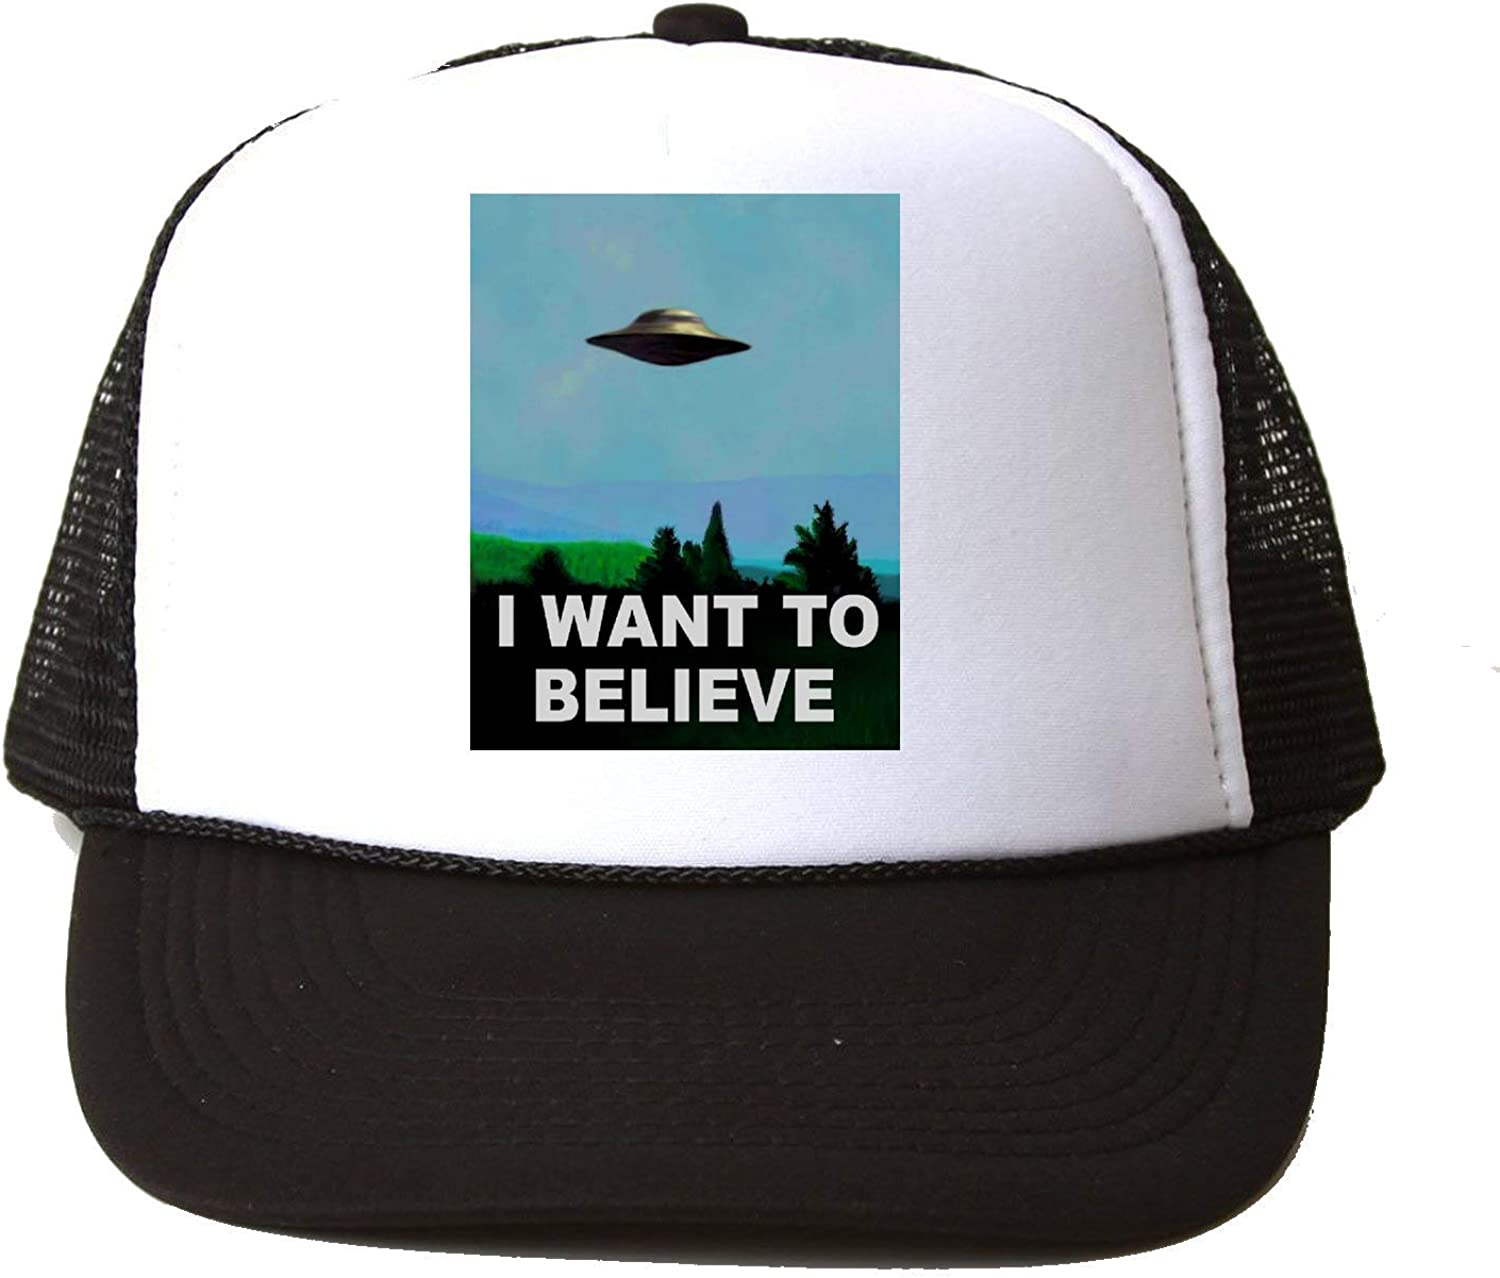 X Files I Want To Believe Poster Baseball Cap Hat Gorra Unisex One ...